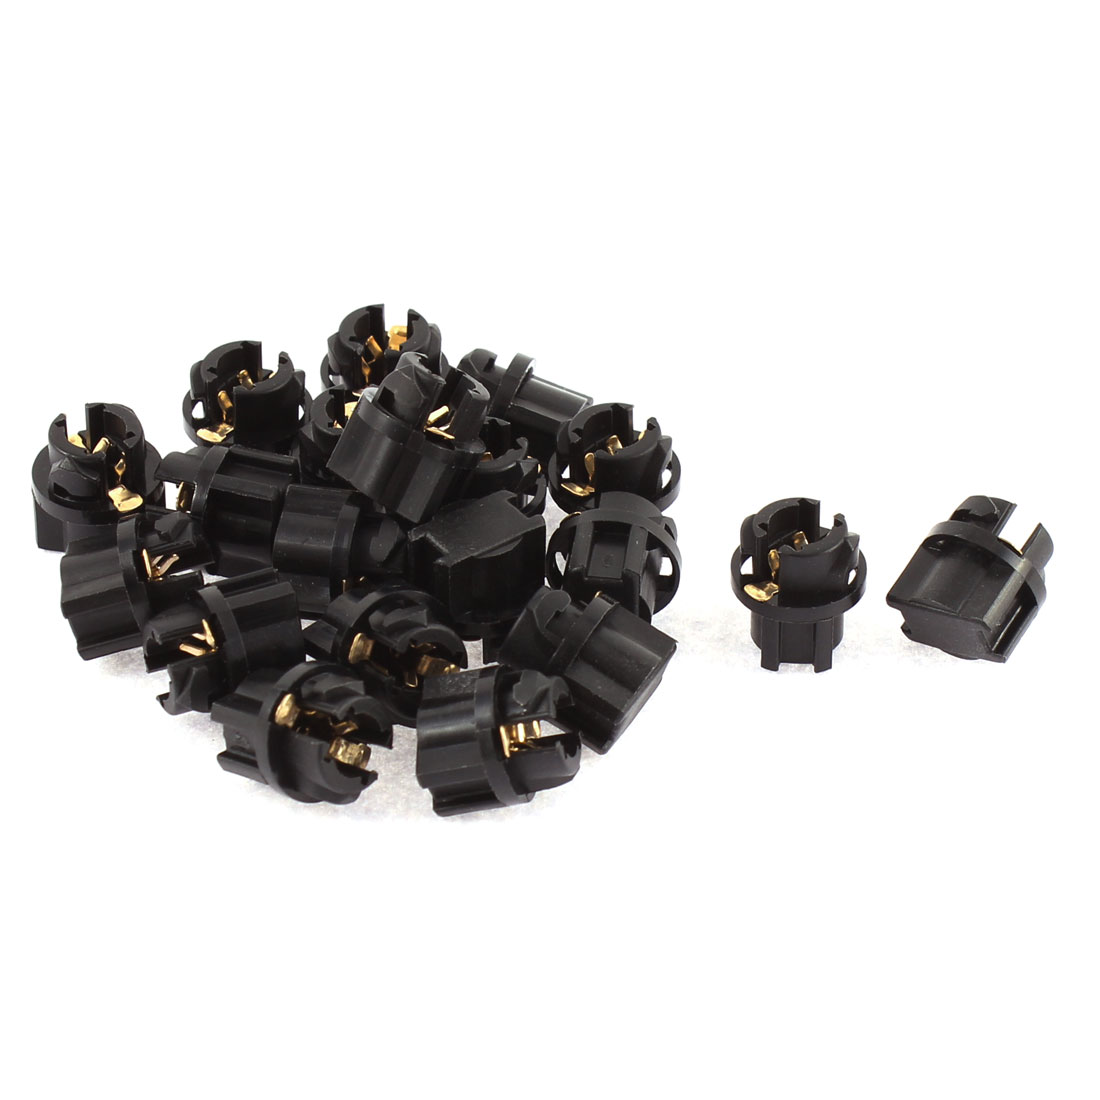 20 Pcs T5 Dashboard Gauge Light Lamp Bulb Socket Holder Black for Automobile